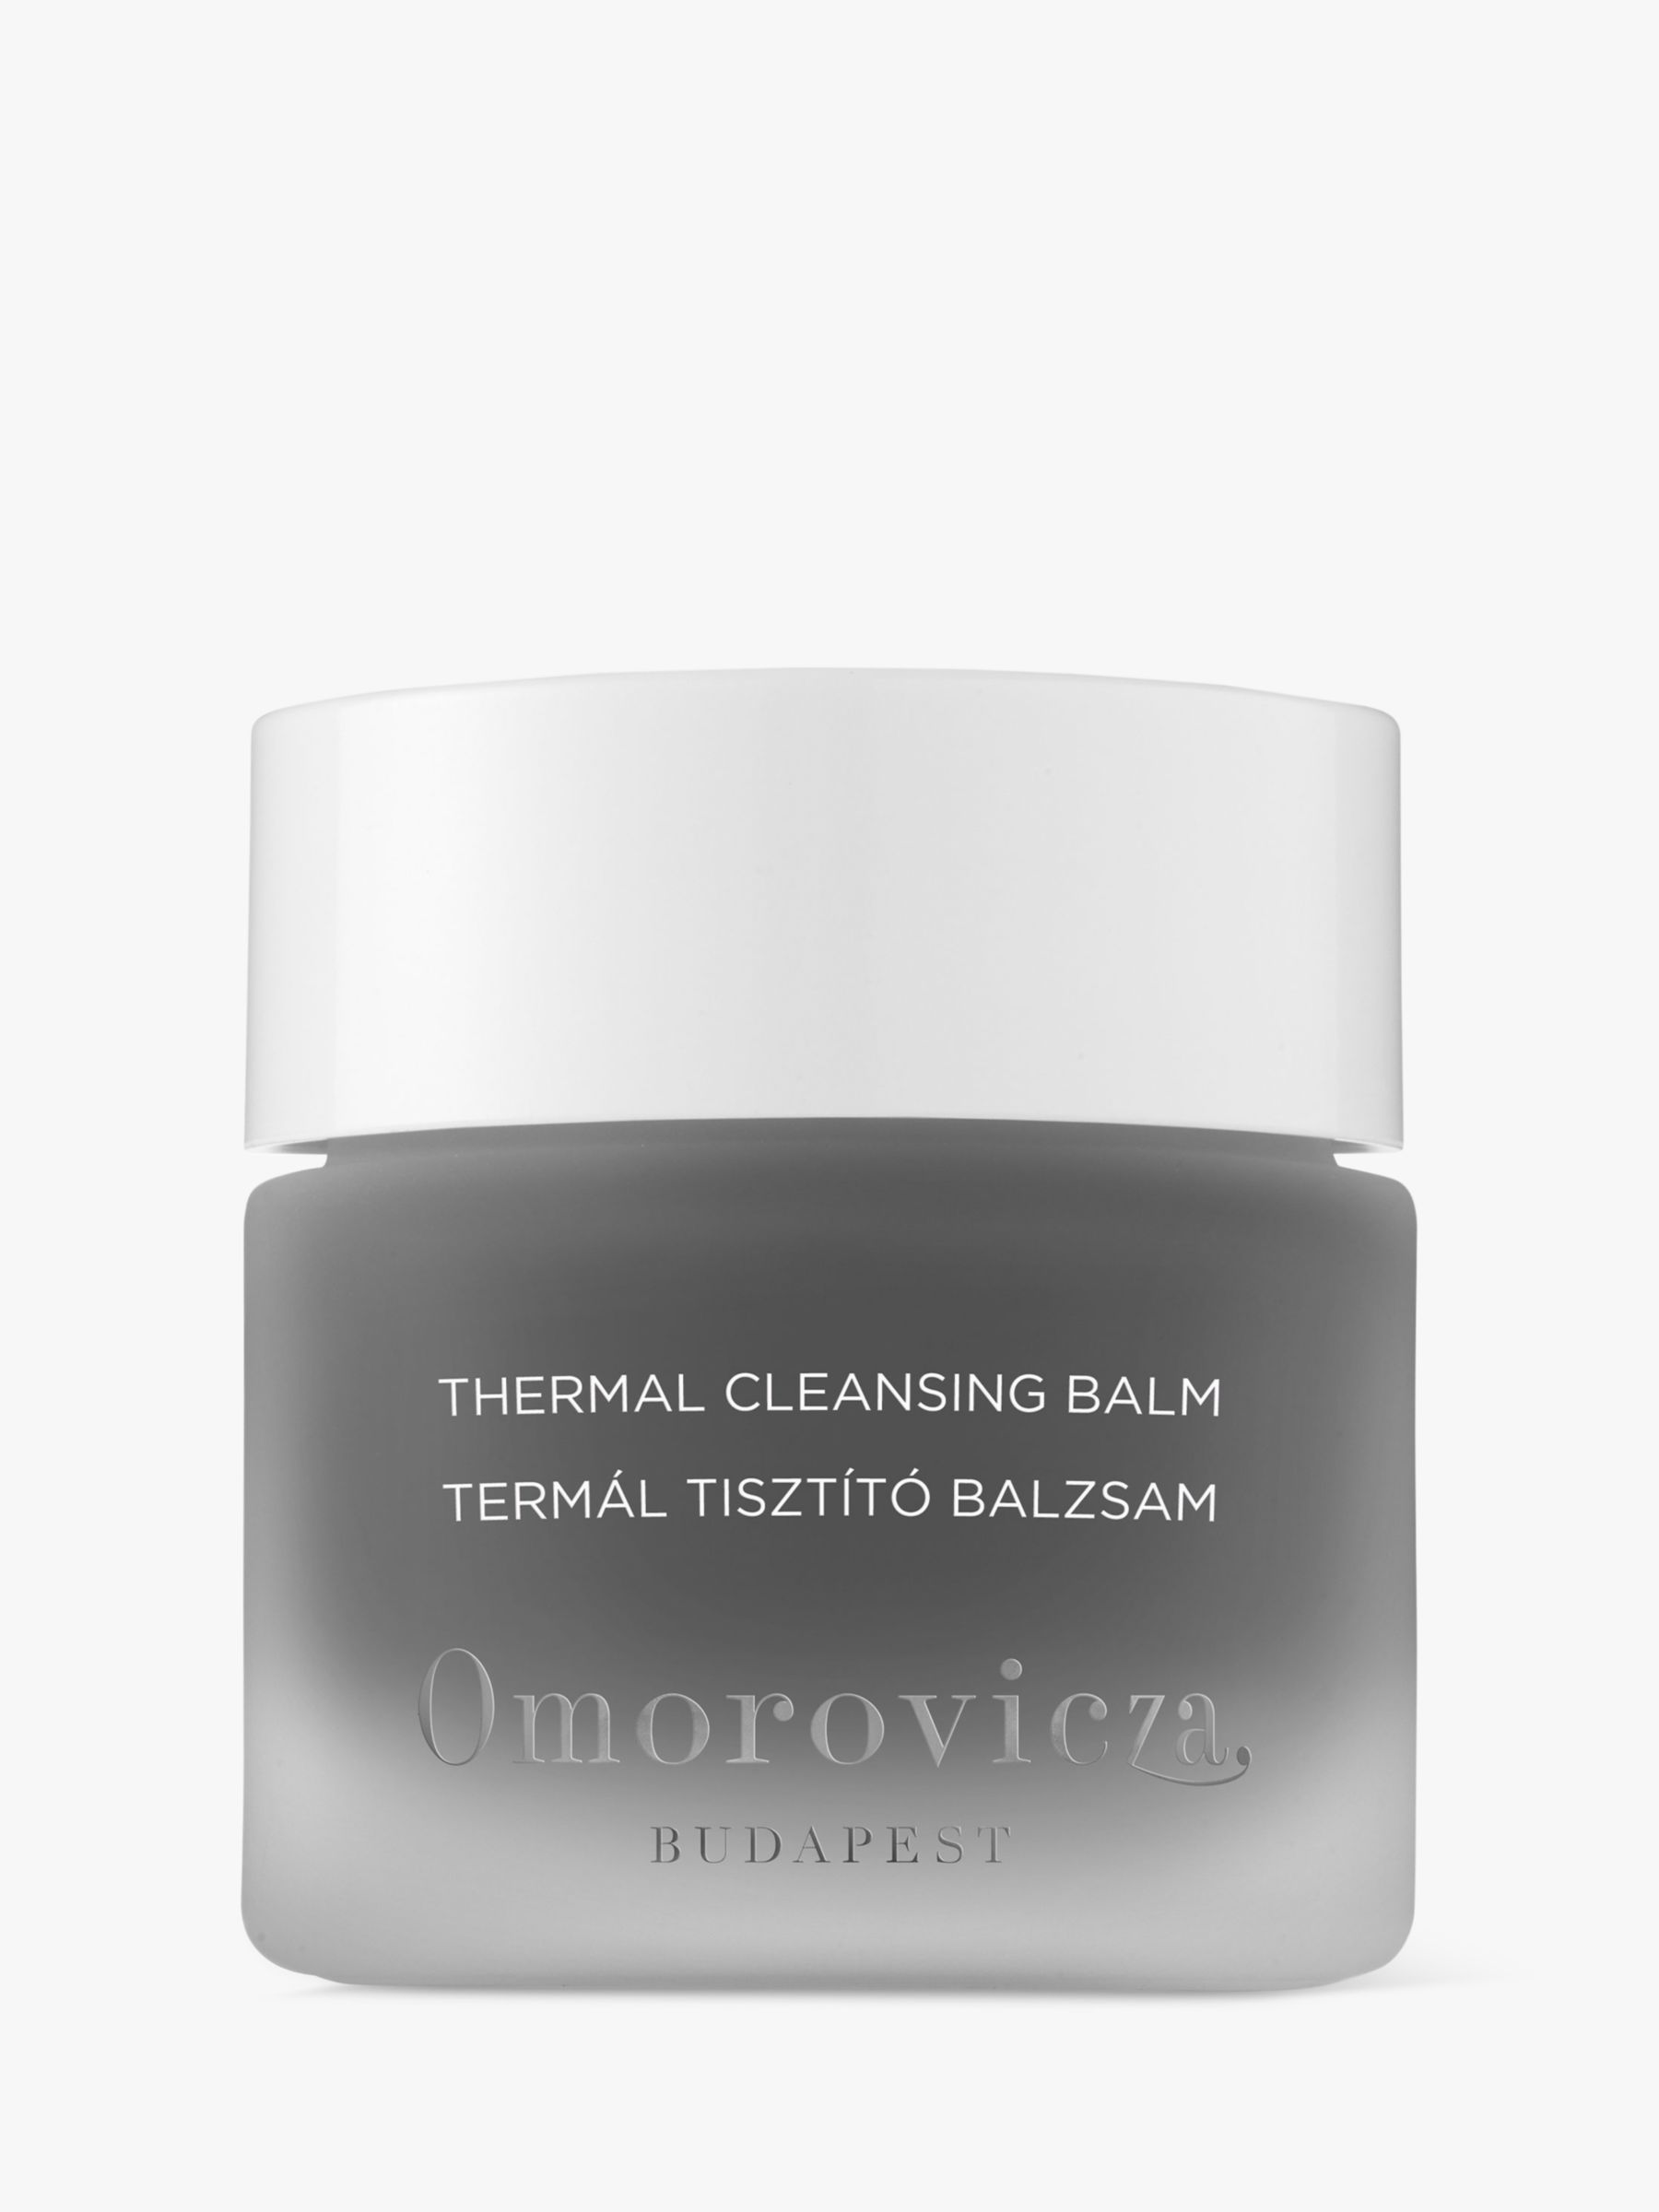 Omorovicza Omorovicza Thermal Cleansing Balm, 50ml